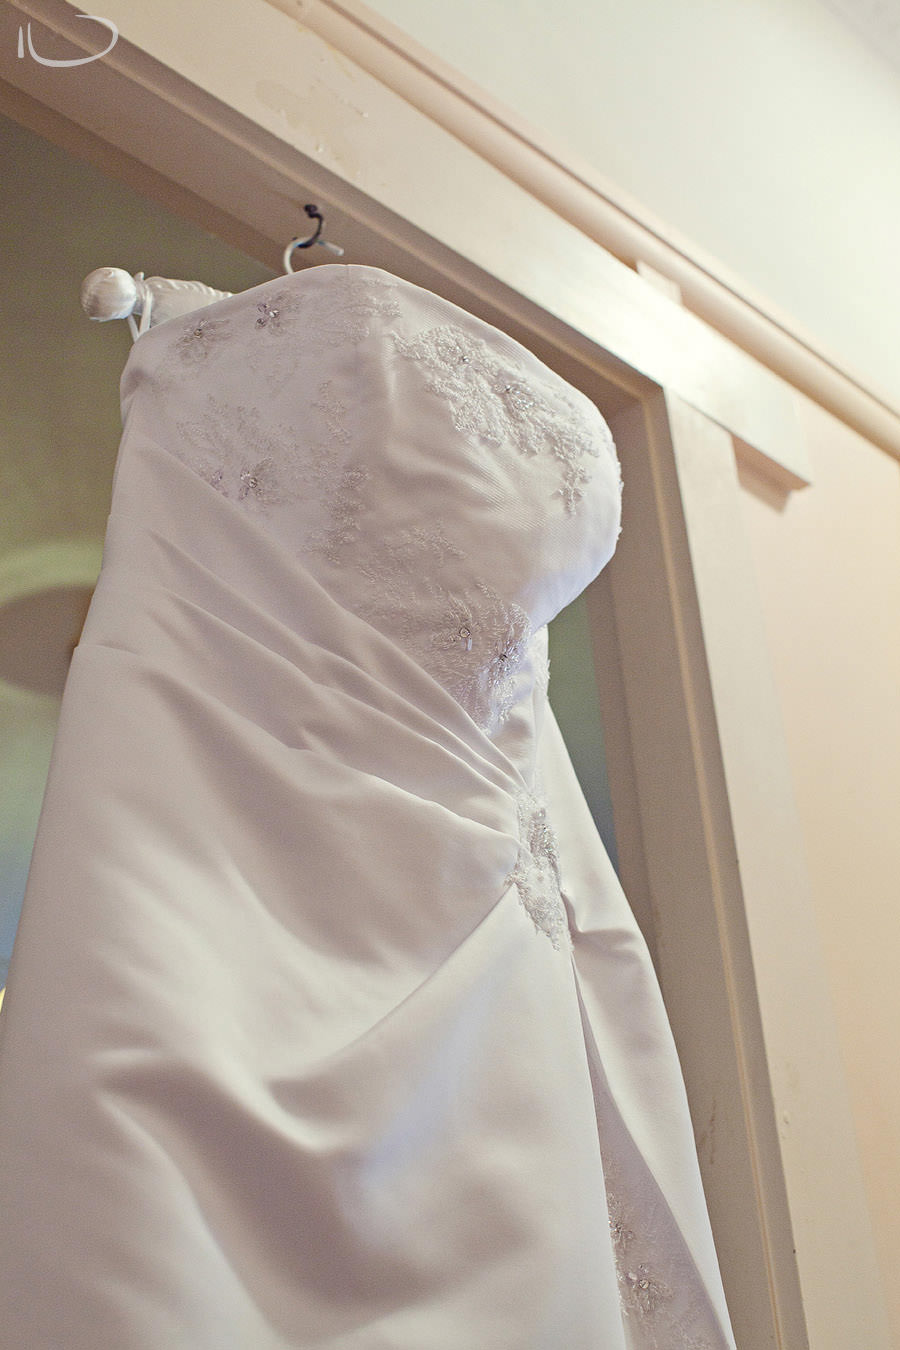 Strathfield Sydney Wedding Photographer: Bride dress handing from door